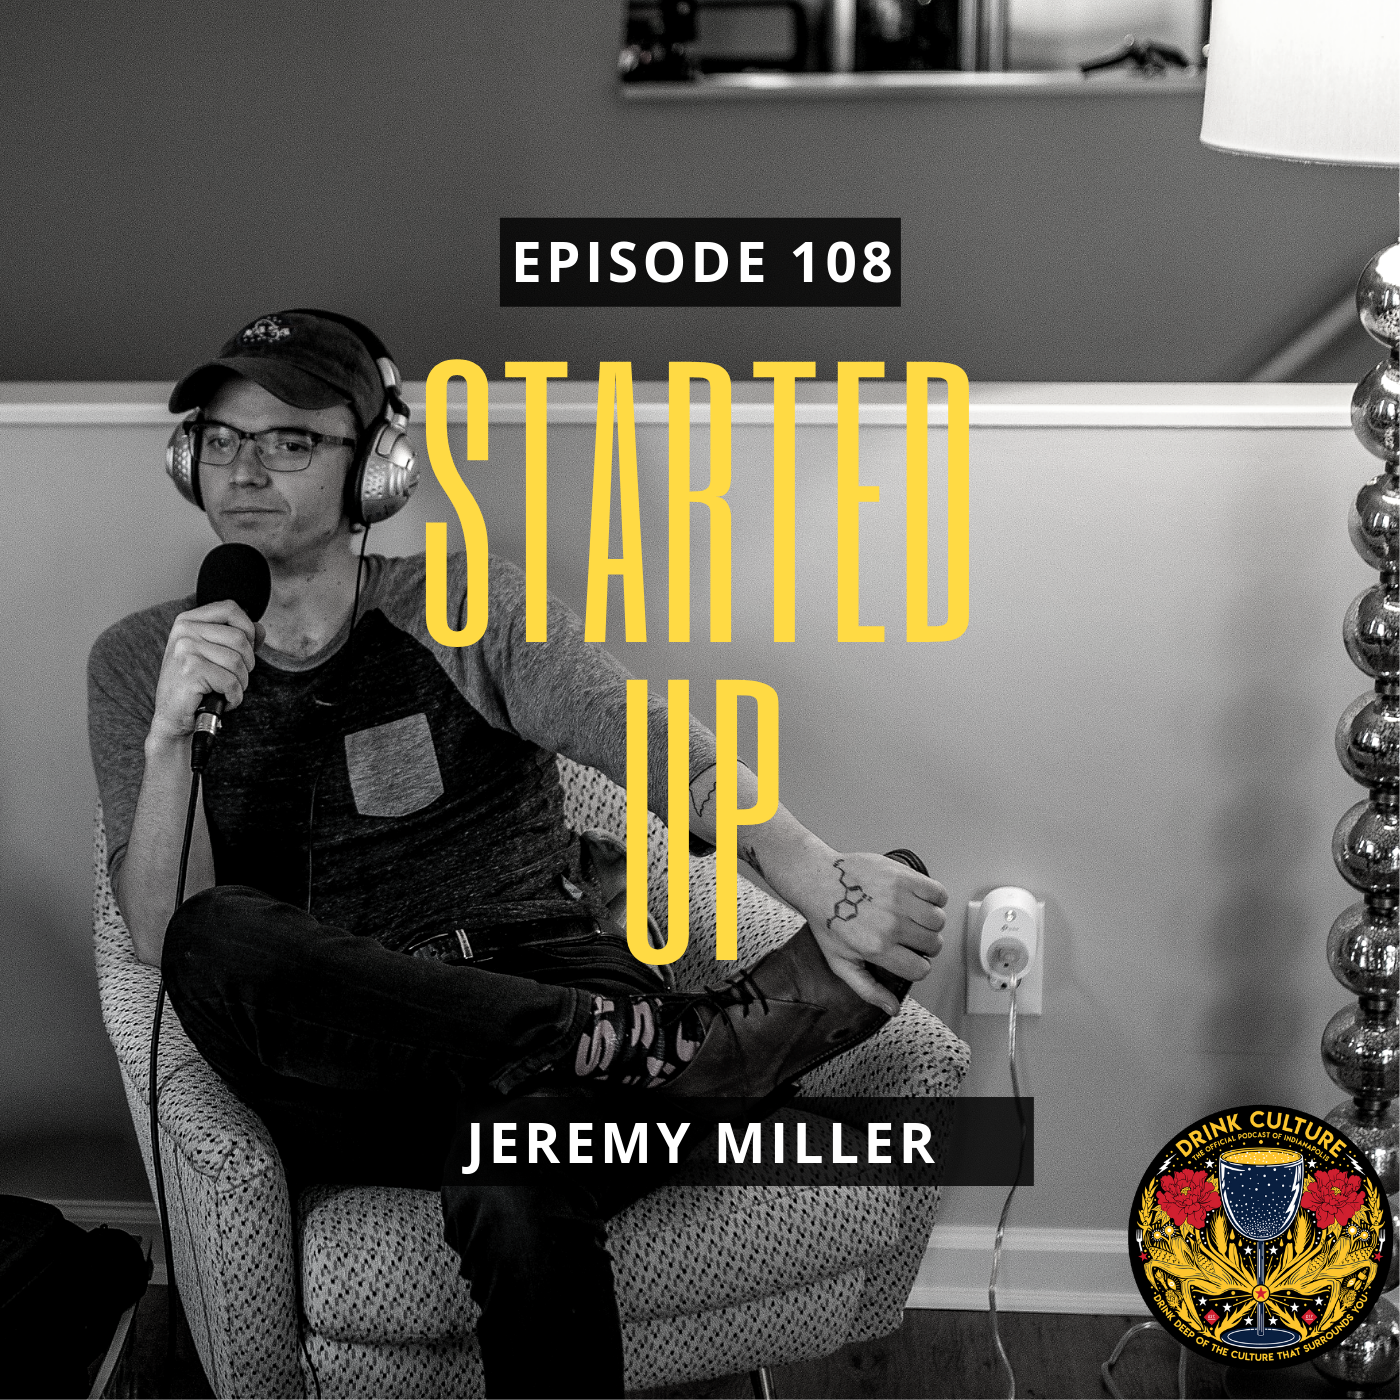 Episode 108: STARTedUp Foundation, Jeremy Miller -